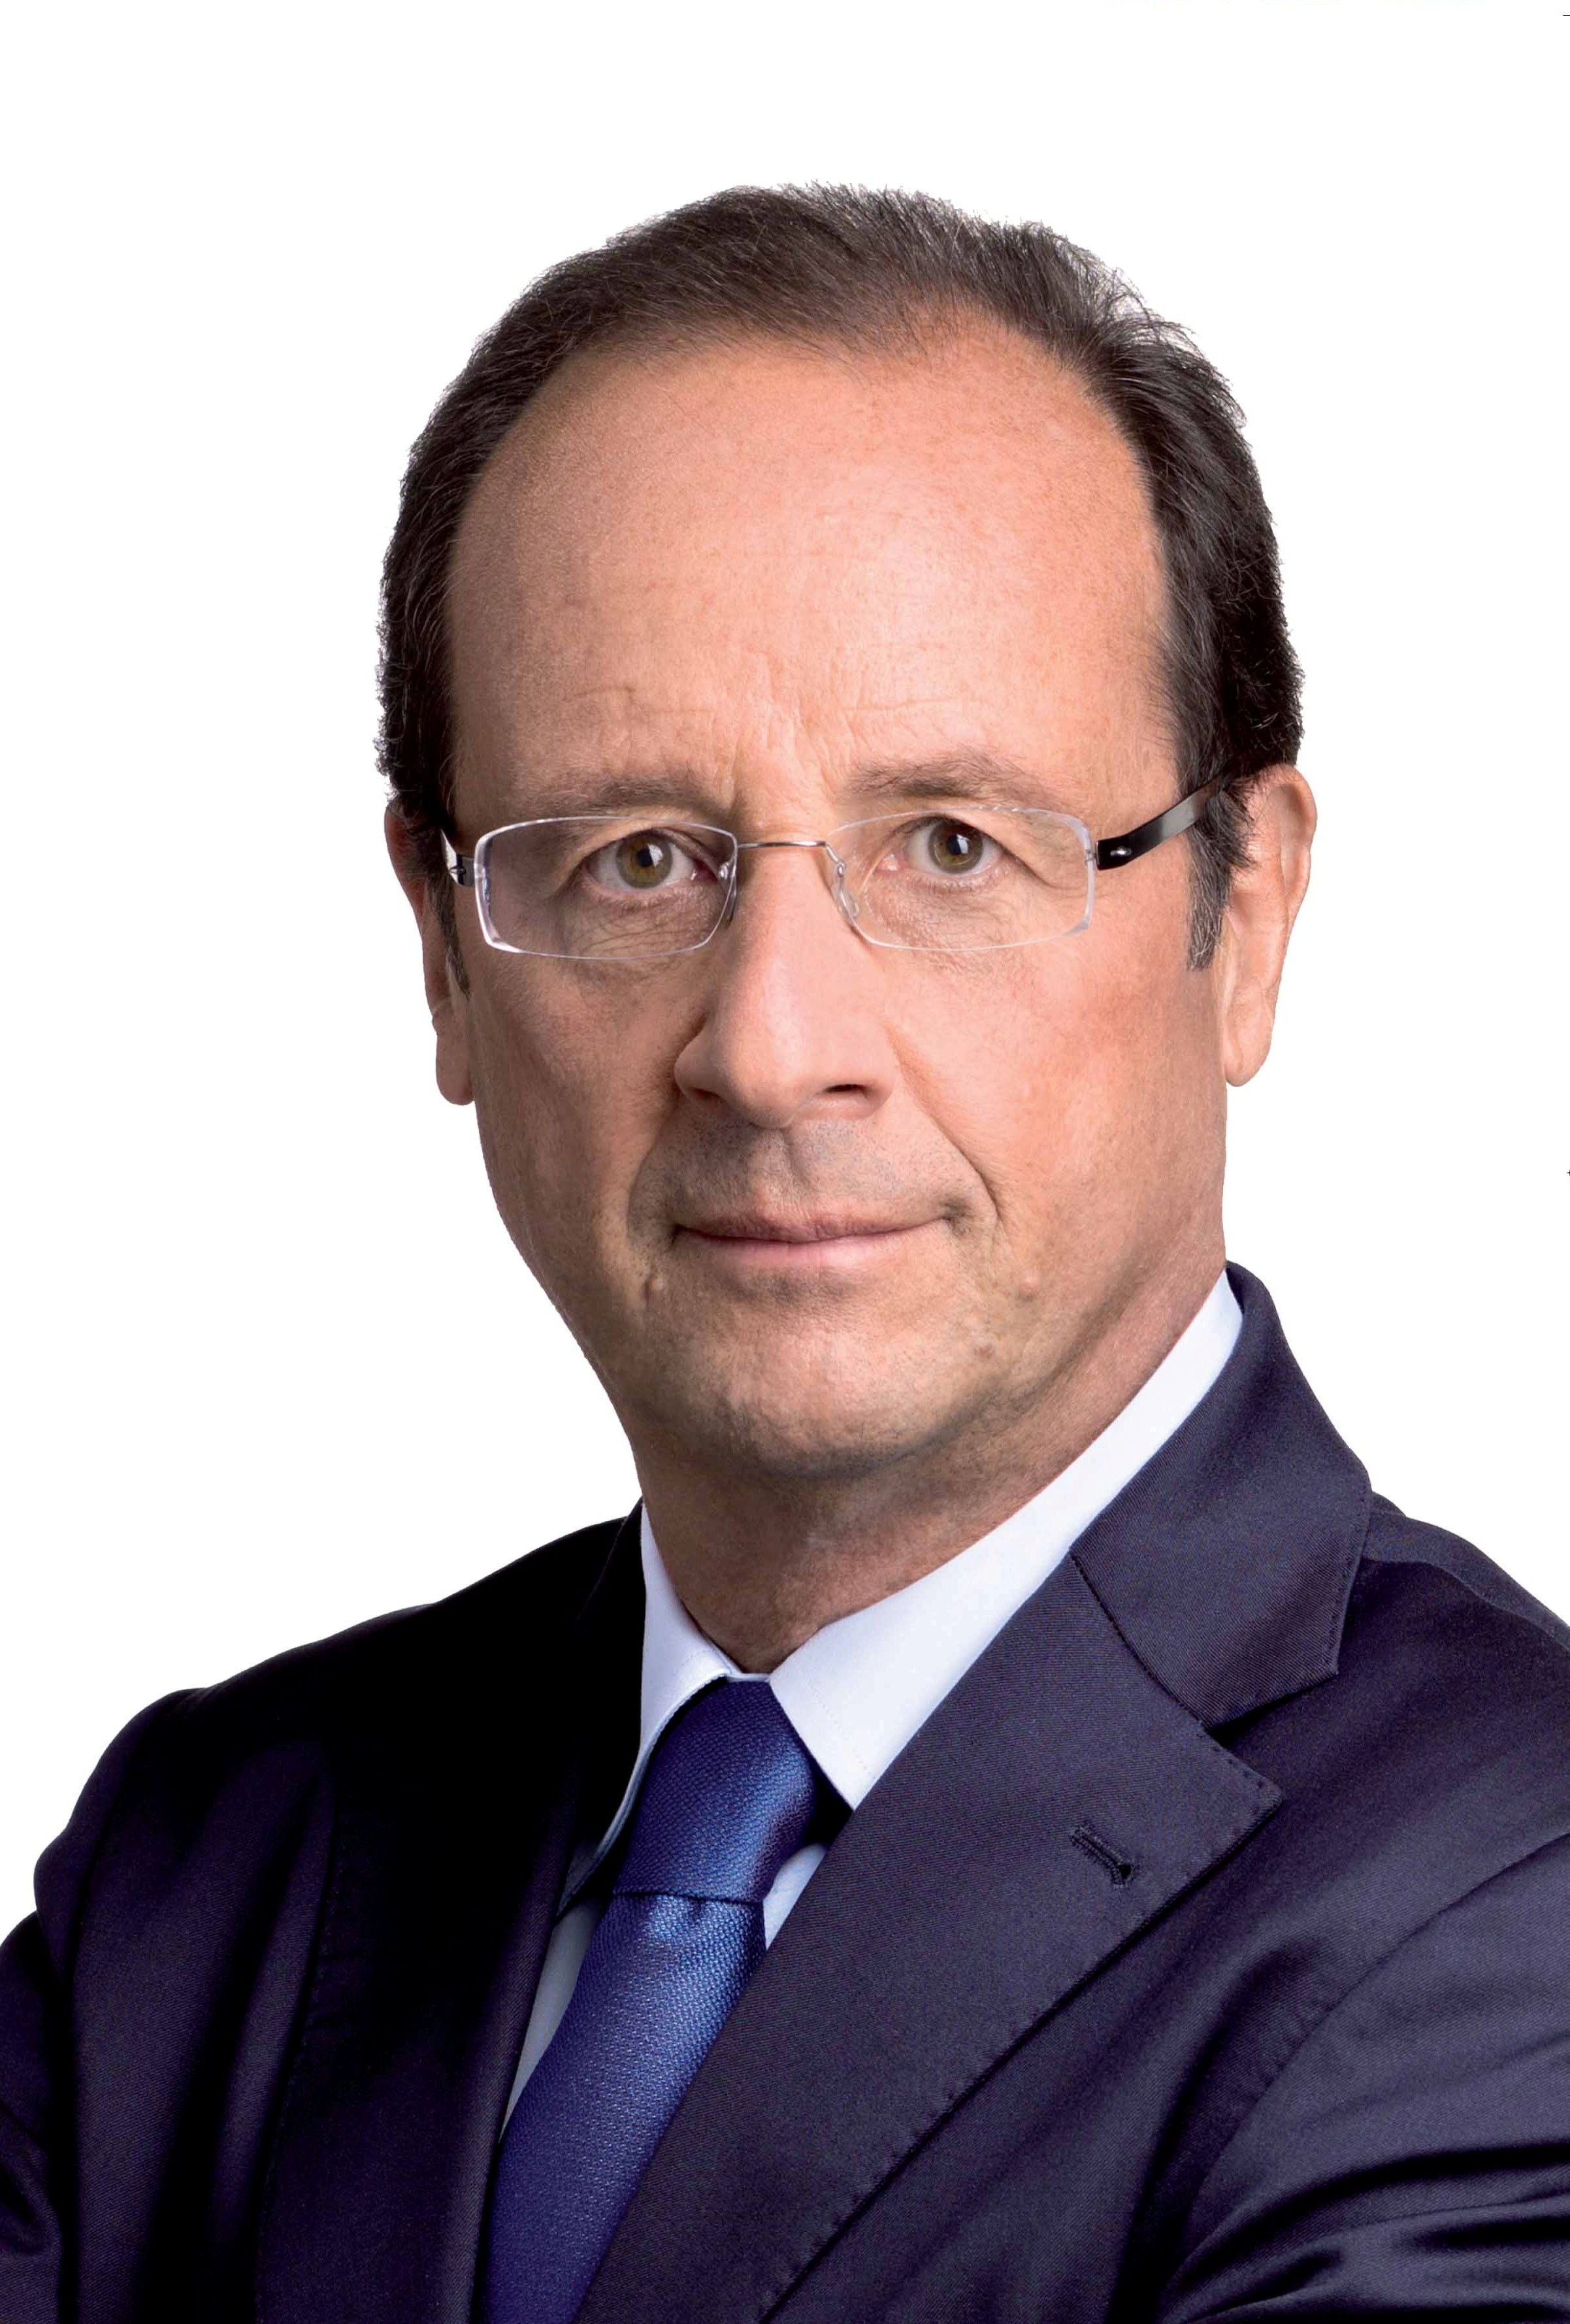 François Hollande earned a  million dollar salary, leaving the net worth at 2 million in 2017